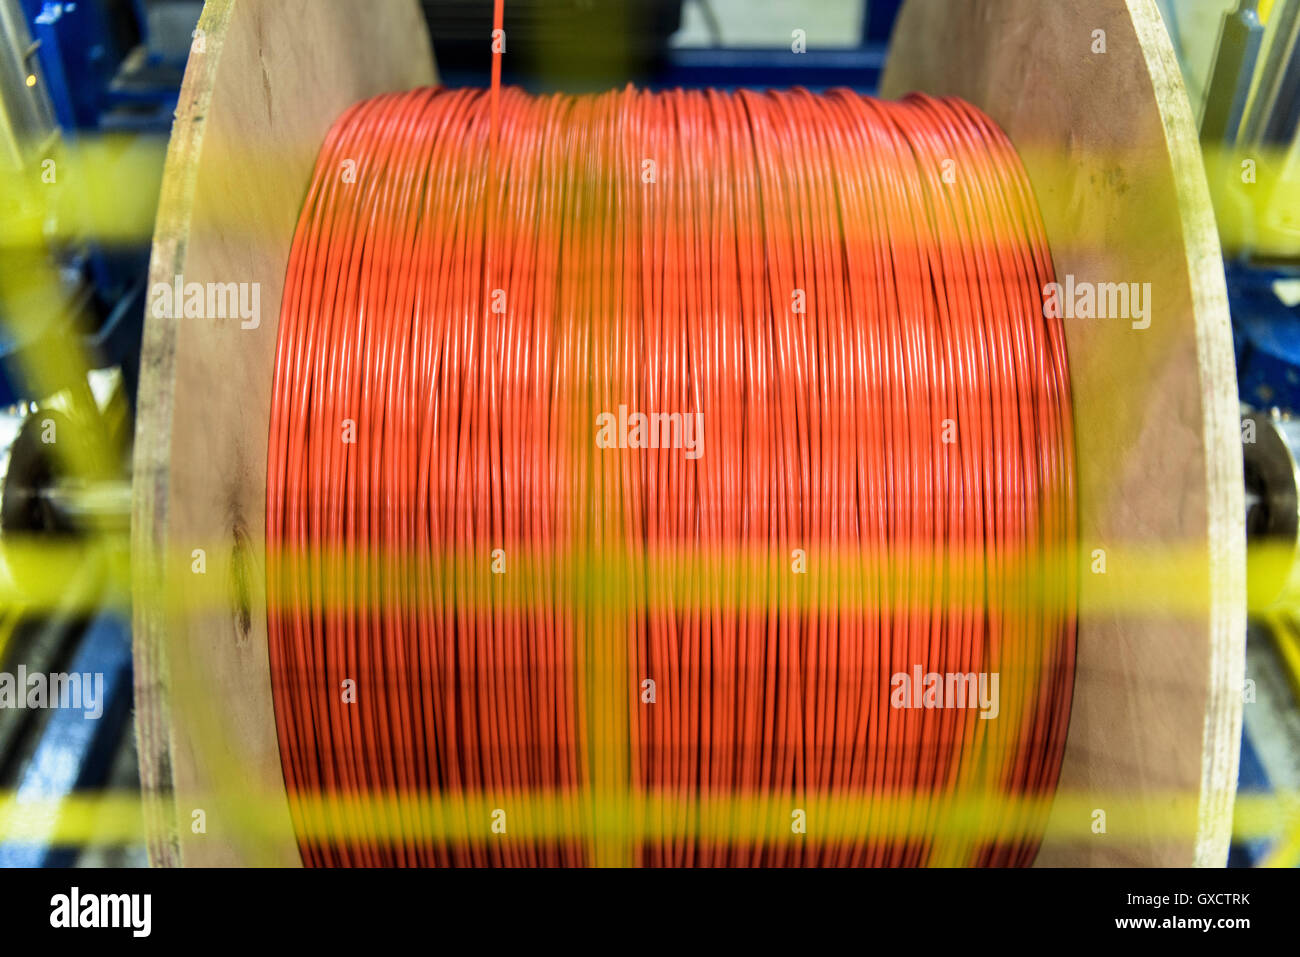 Red cable spinning on spool in cable factory - Stock Image